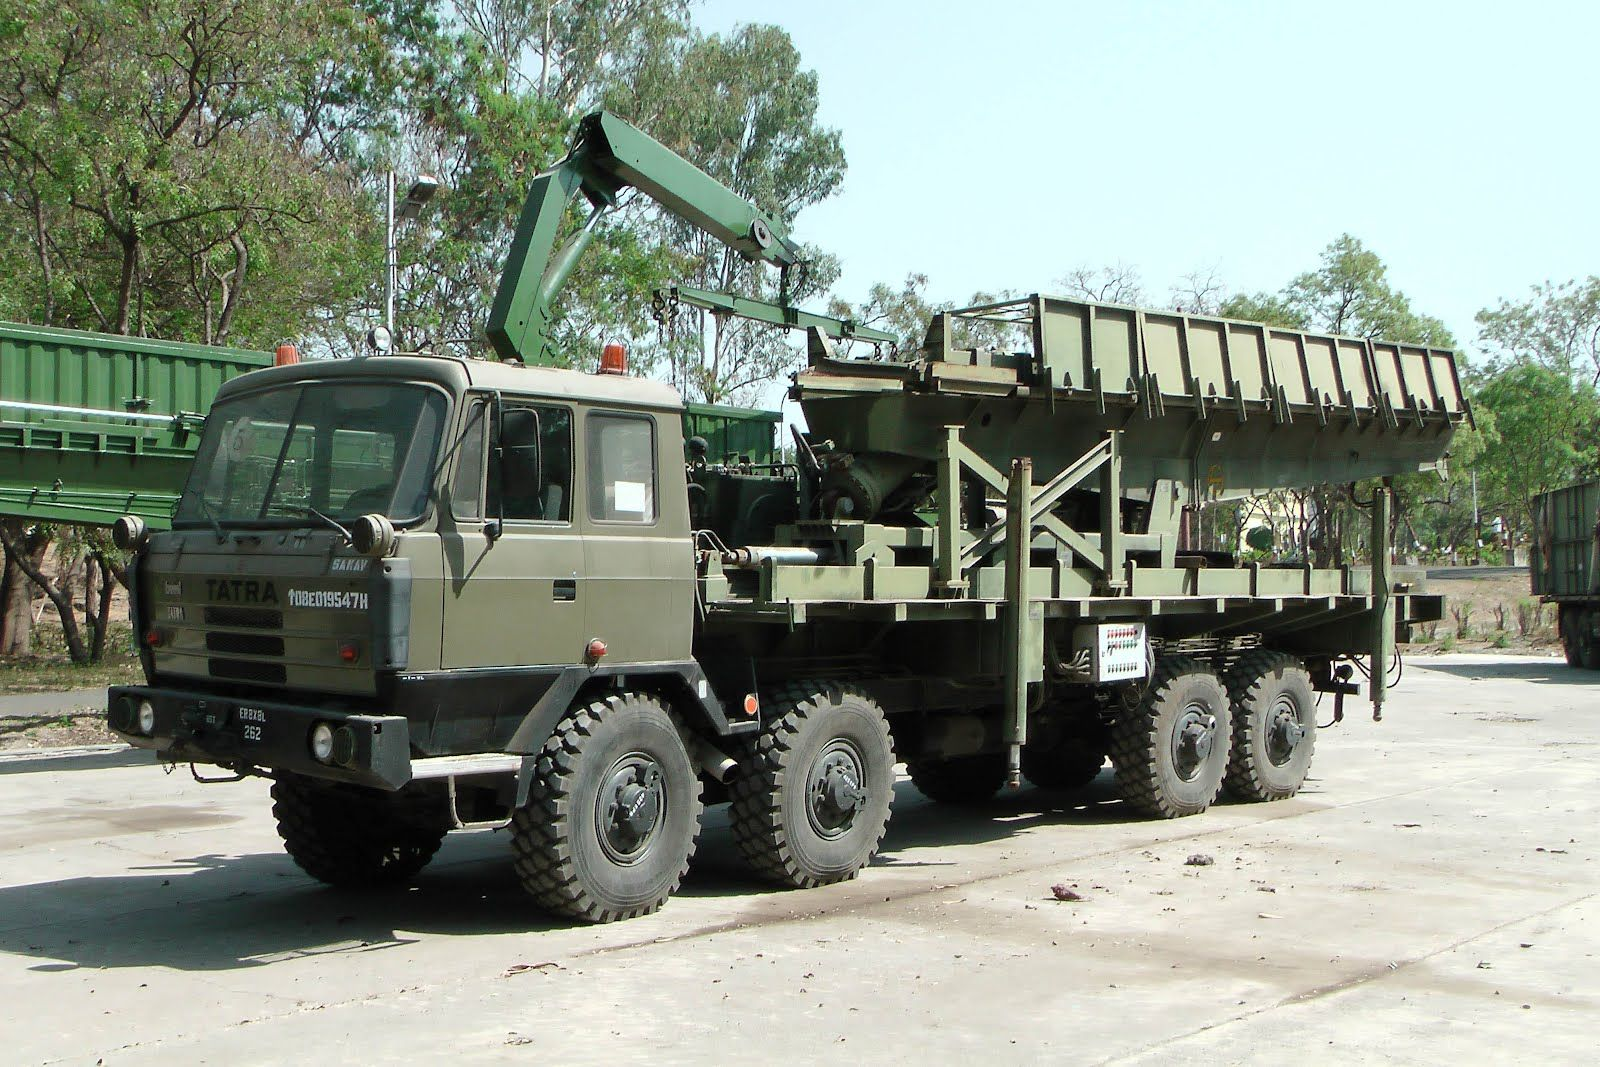 Tatra Indian Army Army Vehicles Army Truck Military Vehicles